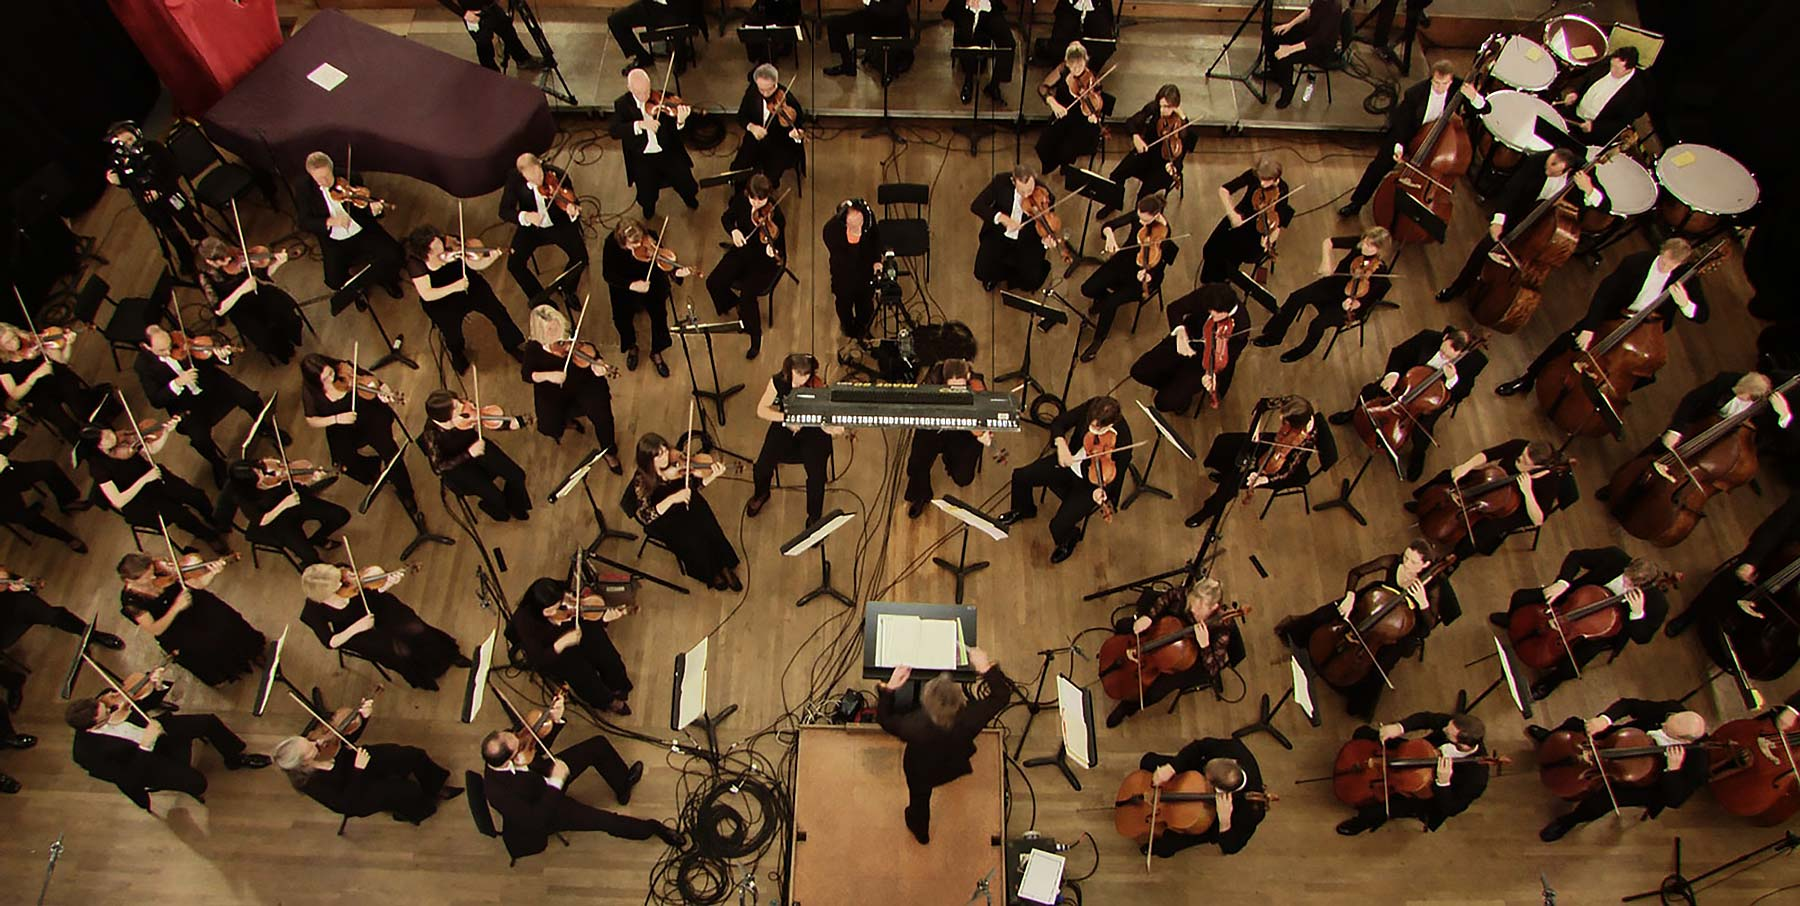 Interactive Video Production | The Orchestra: Ipad App